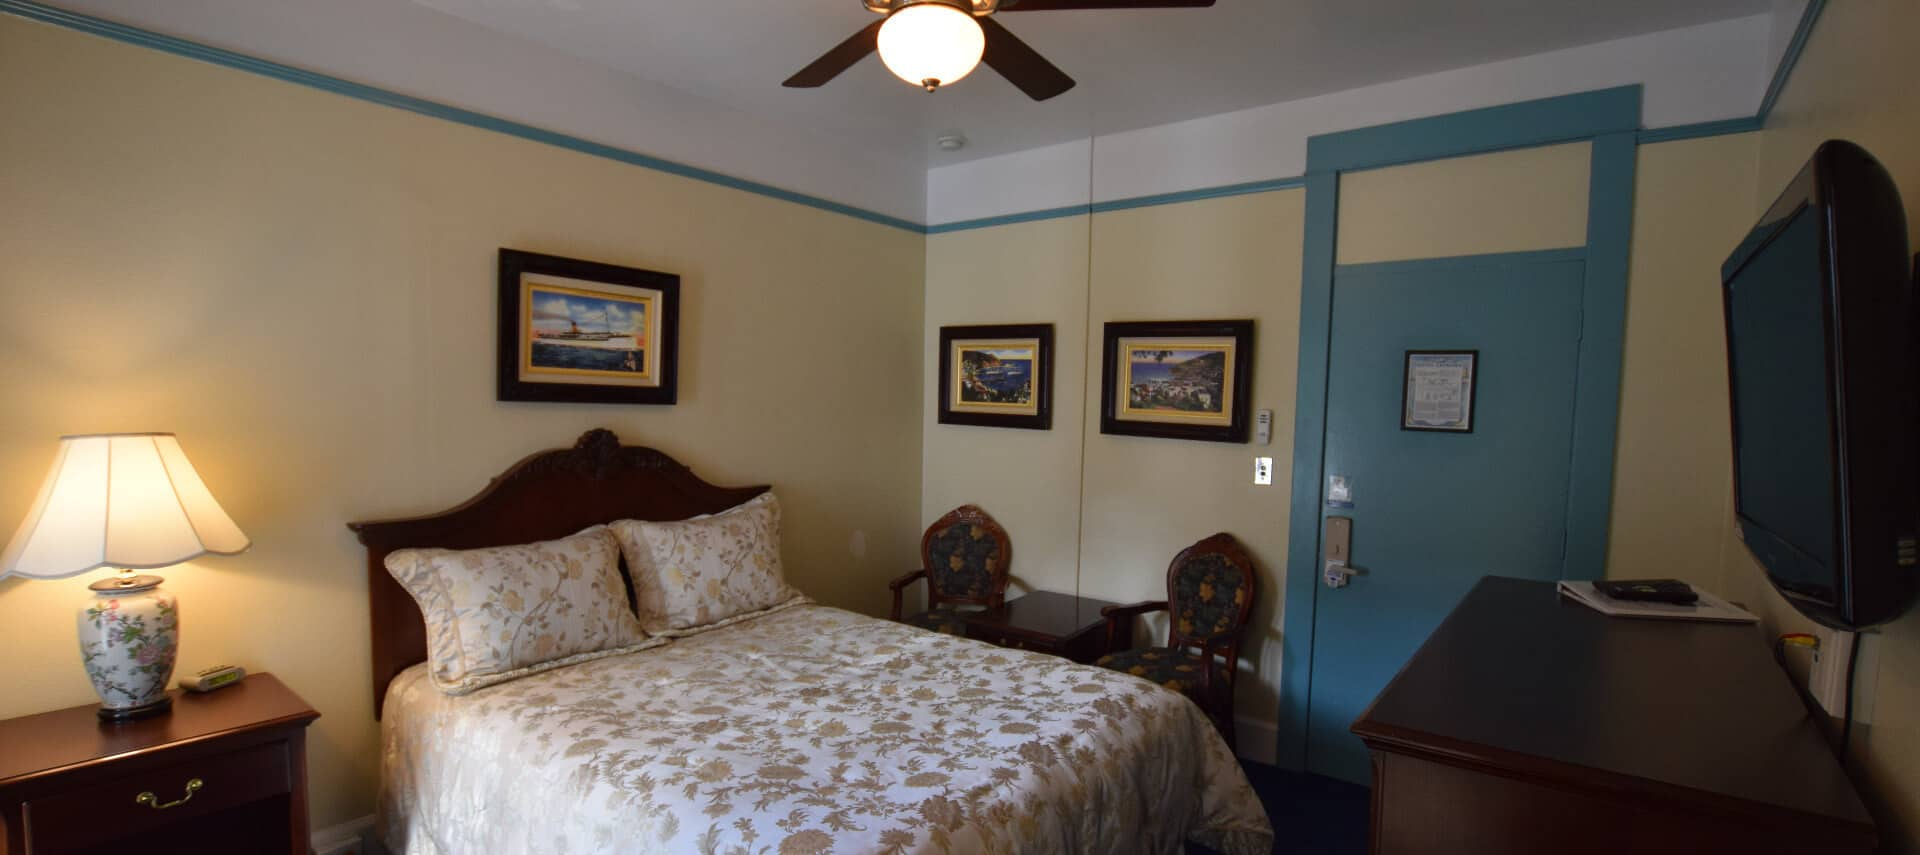 Room painted in yellow and bright blue with a queen bed and ceiling fan.